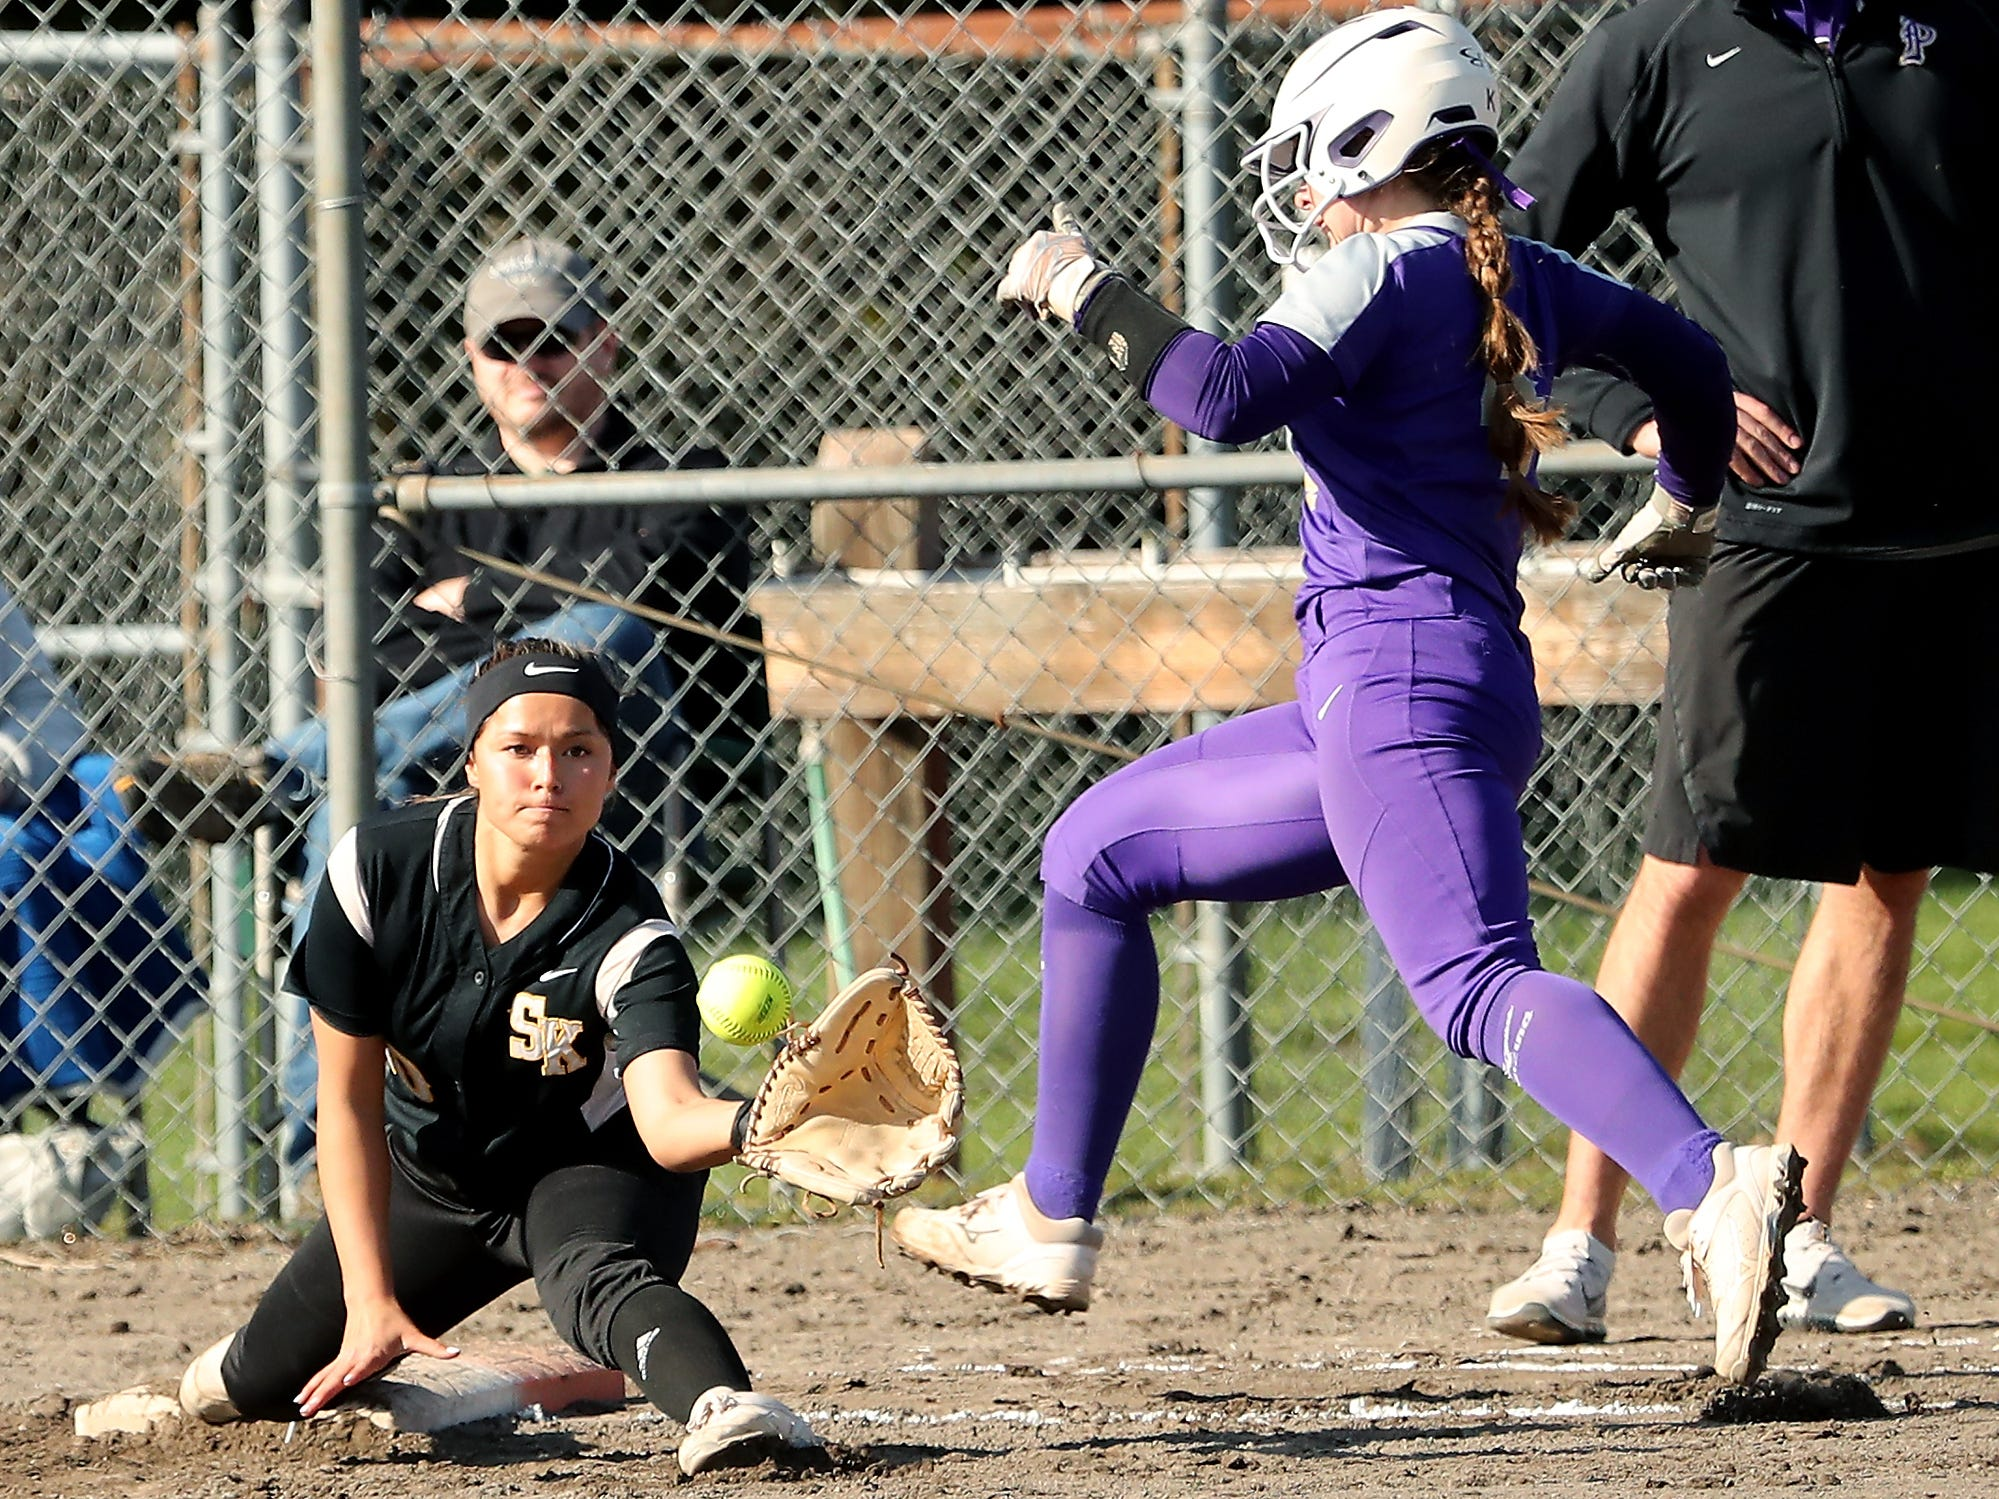 South Kitsap's Jordynn Lawrence makes the catch and Puyallup's McKennah (KJ) Ulrey is out at first on Tuesday, March 26, 2019.